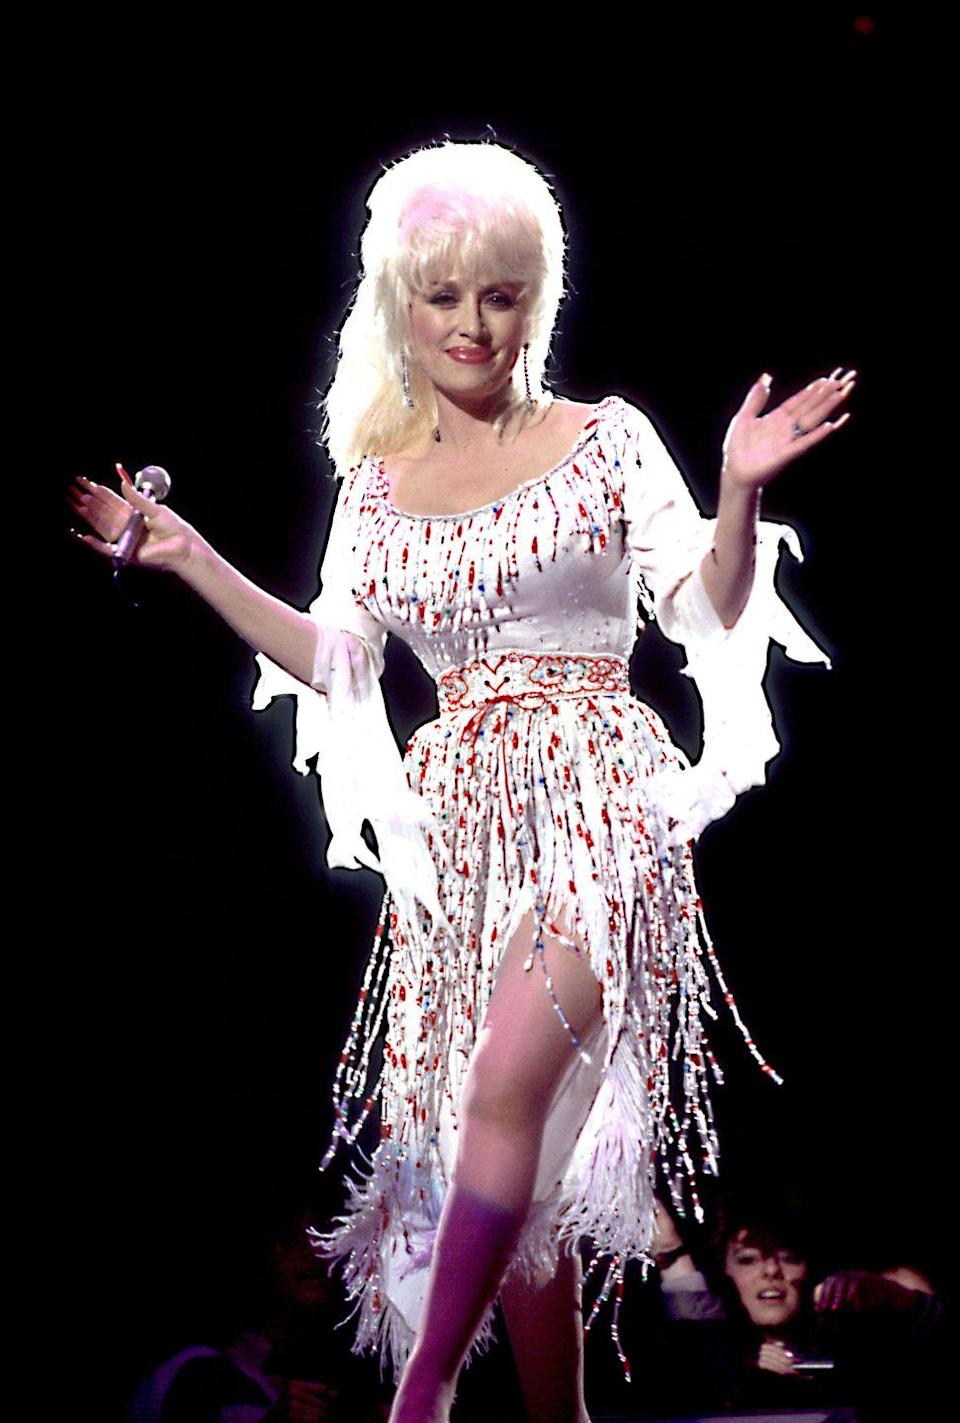 <p>During a concert in 1986, Parton wears something completely out of character: A ponytail. </p>